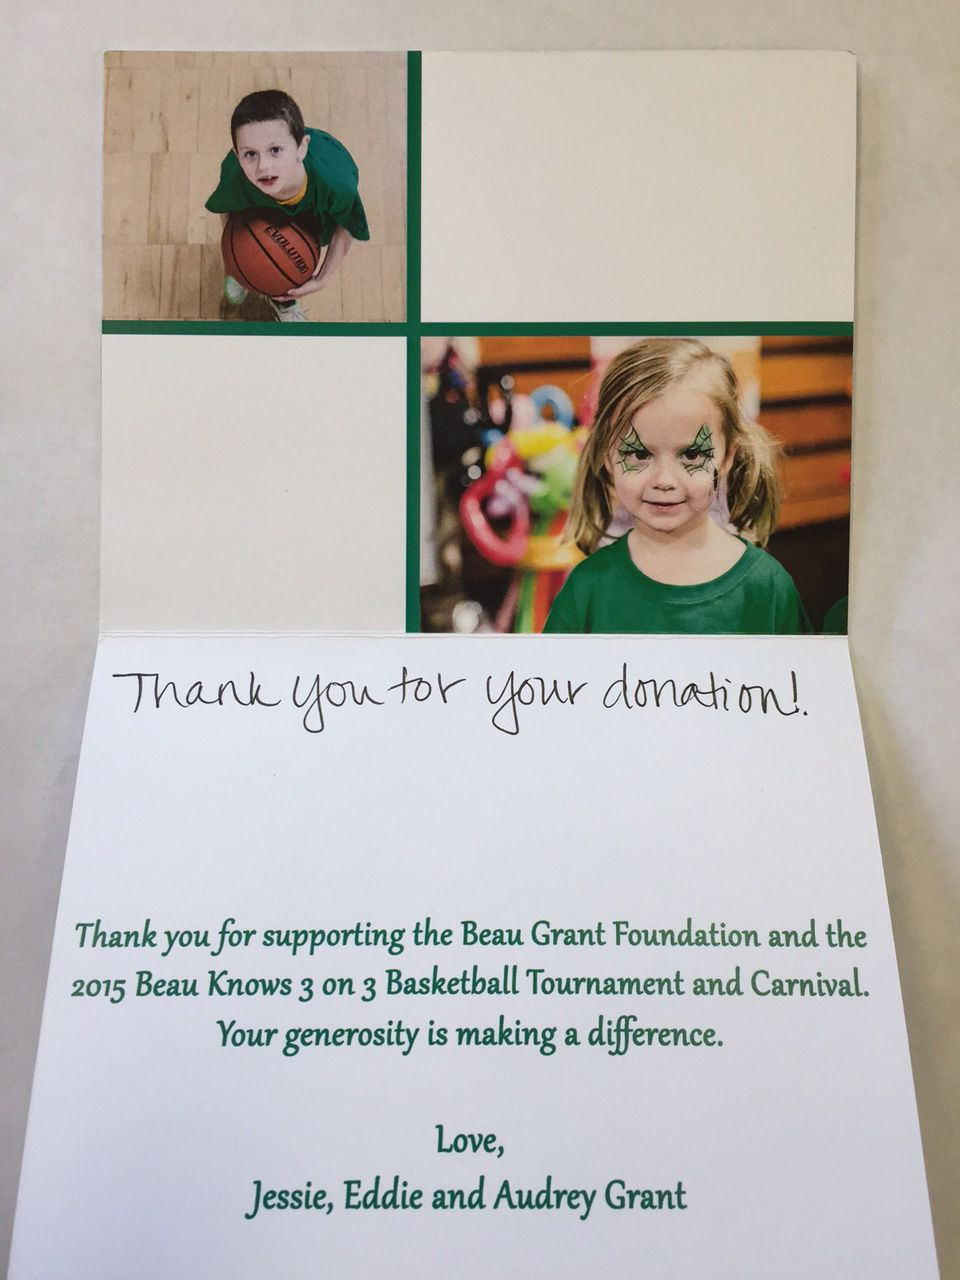 The Beau Grant Foundation Note